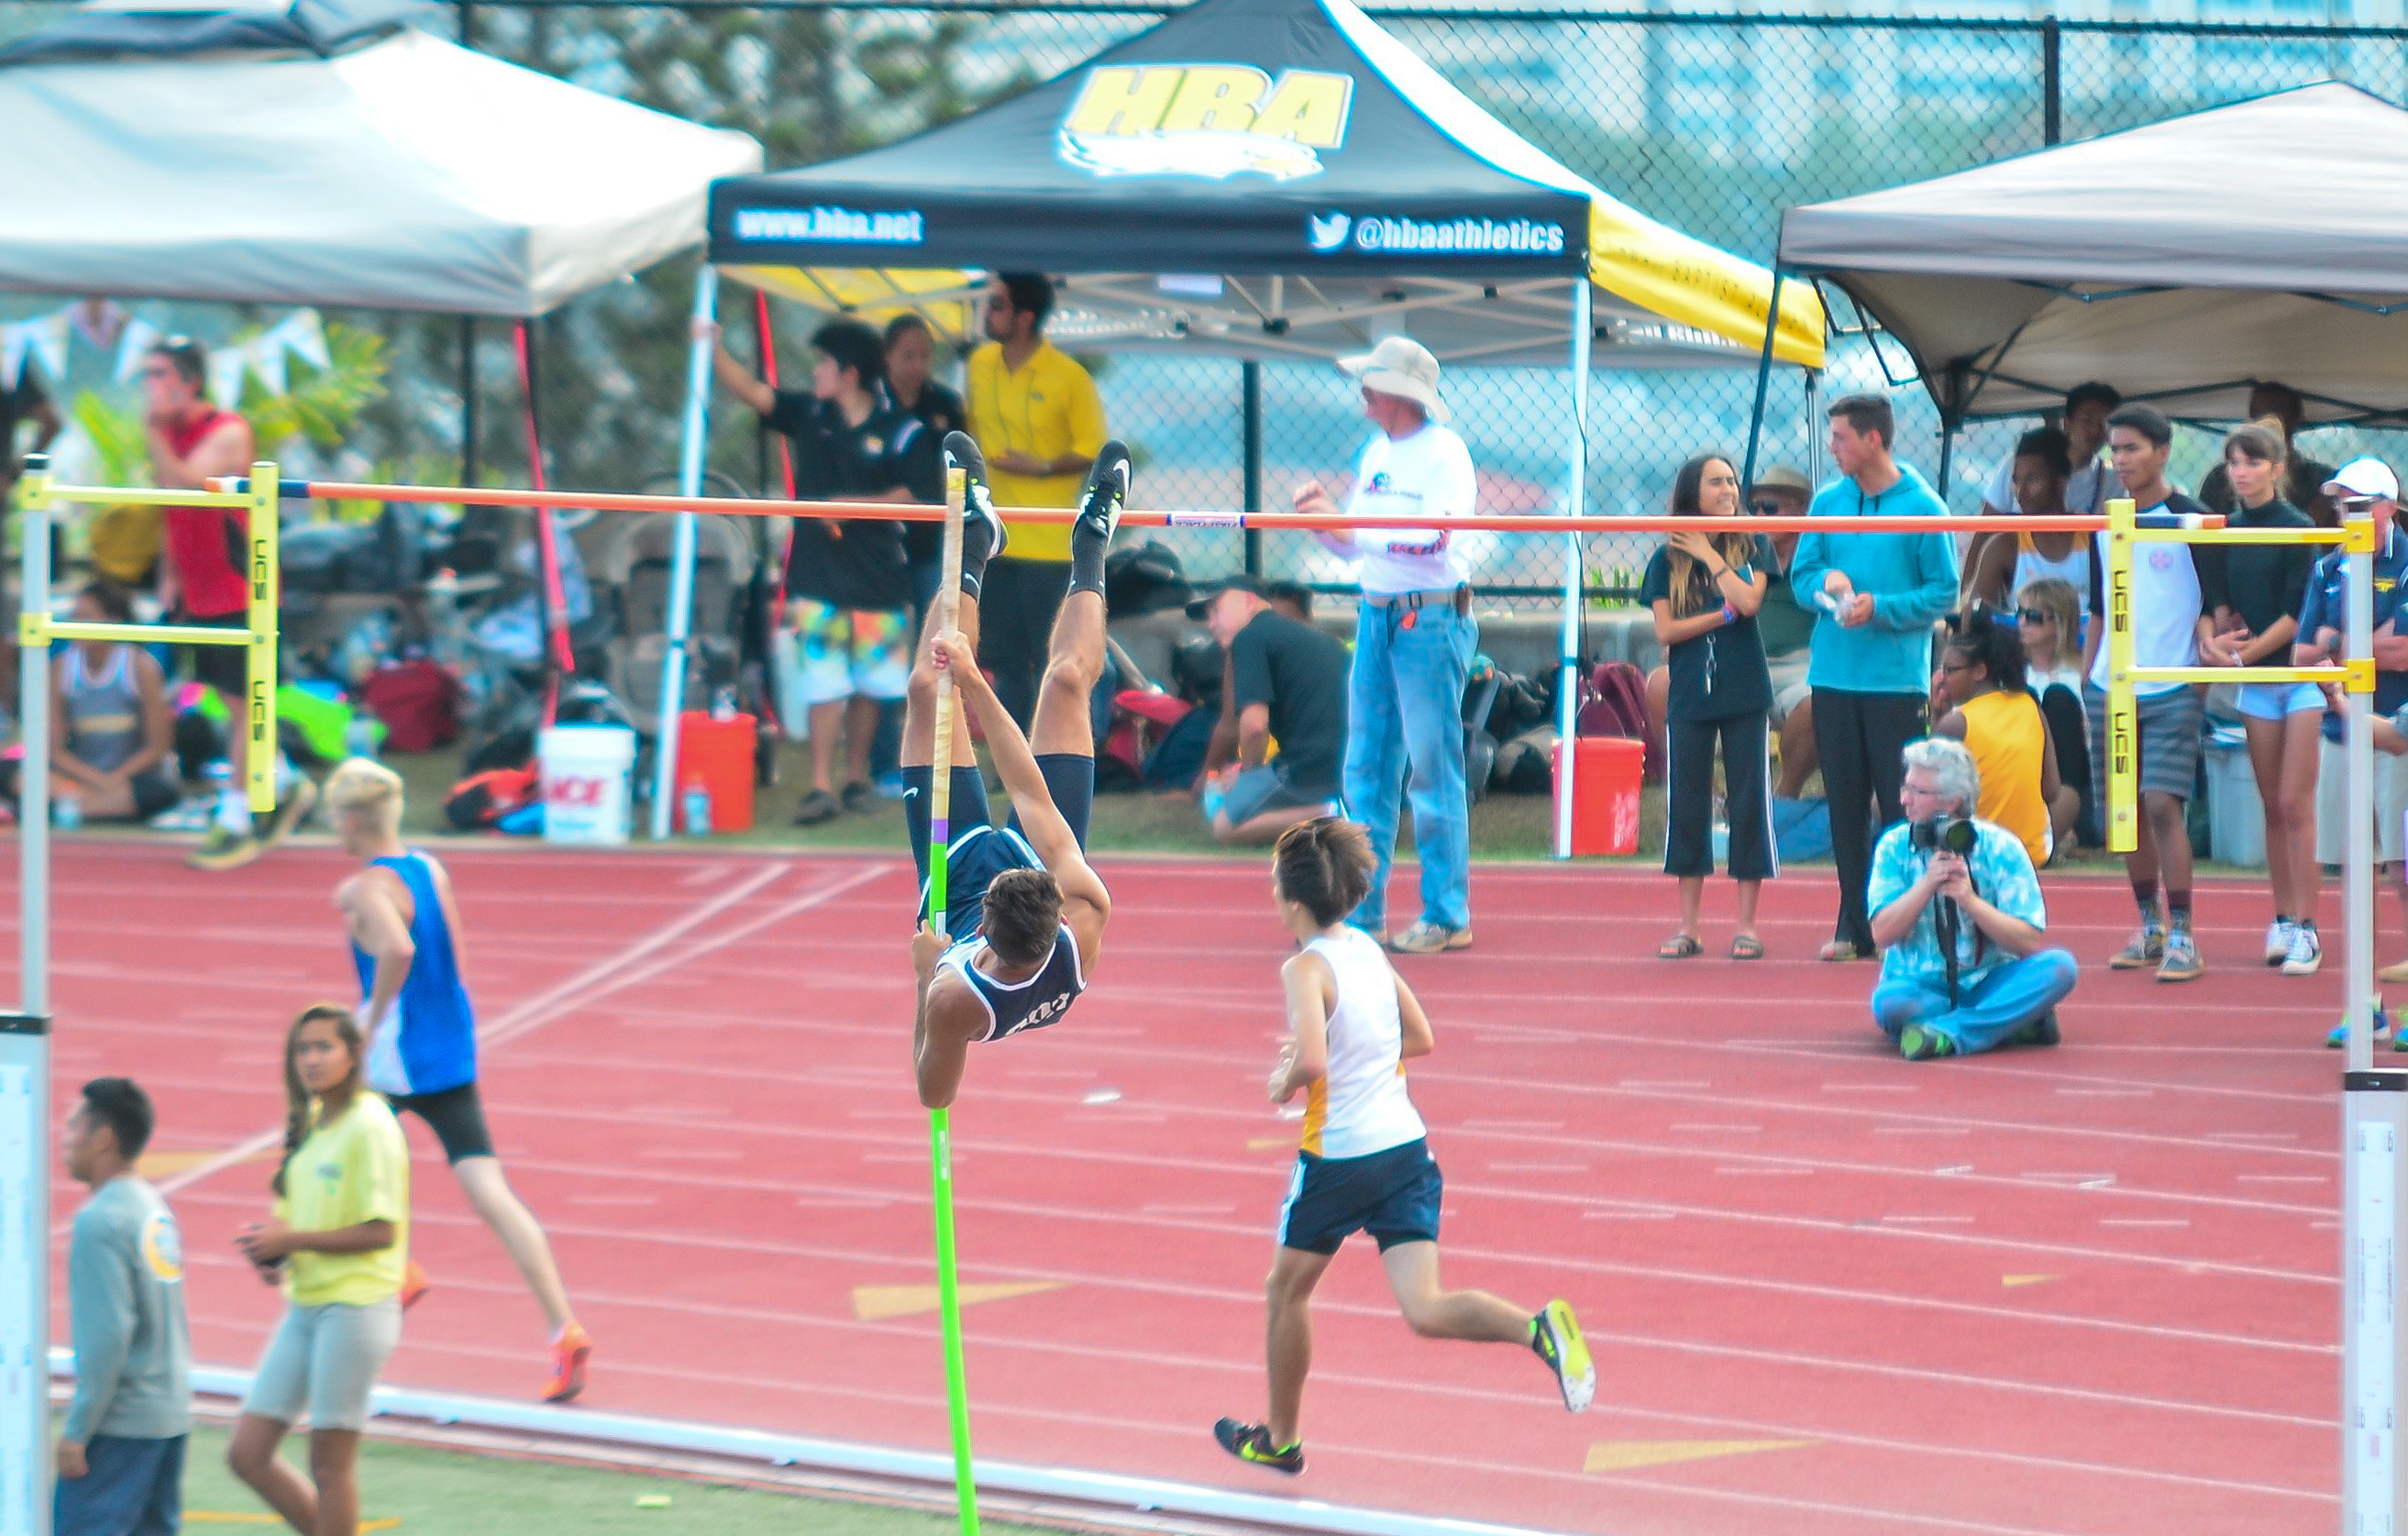 Kamehameha Maui's Quinn Hottendorf didn't win a medal at 12 feet, 9 inches, but he did gain valuable experience and closed out the year ranked No. 11. Hottendorf started the weekend No. 16 at 12-2. Photo by Rodney S. Yap.